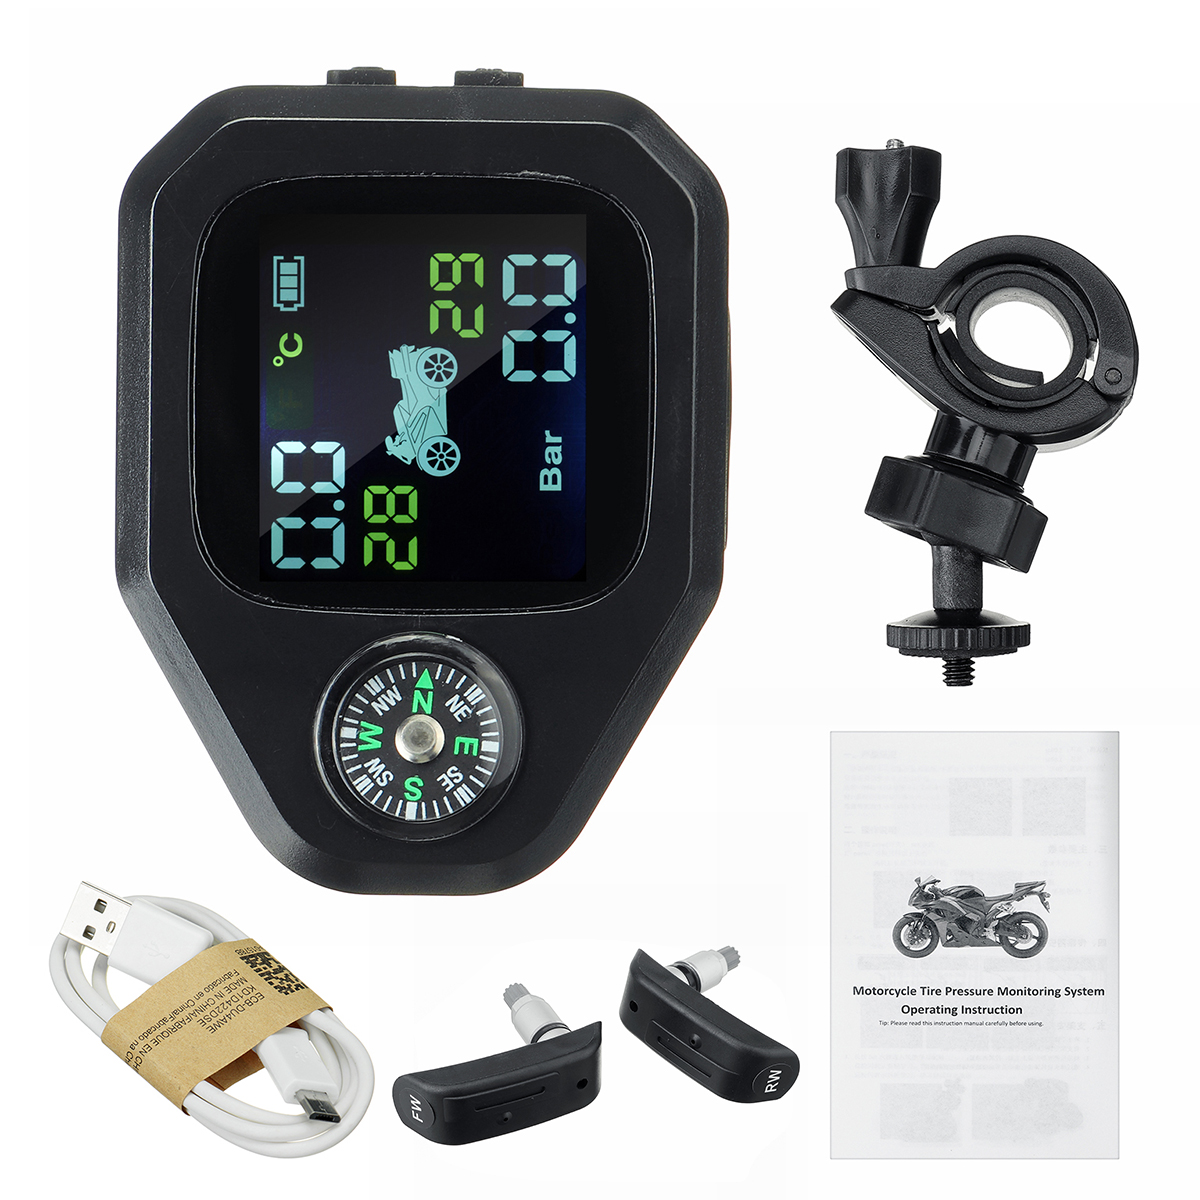 Motorcycle Compass TPMS LCD Display Waterproof Tire Pressure Monitoring System Direction 2pcs Sensor Tire Pressure Alarm Monitoring